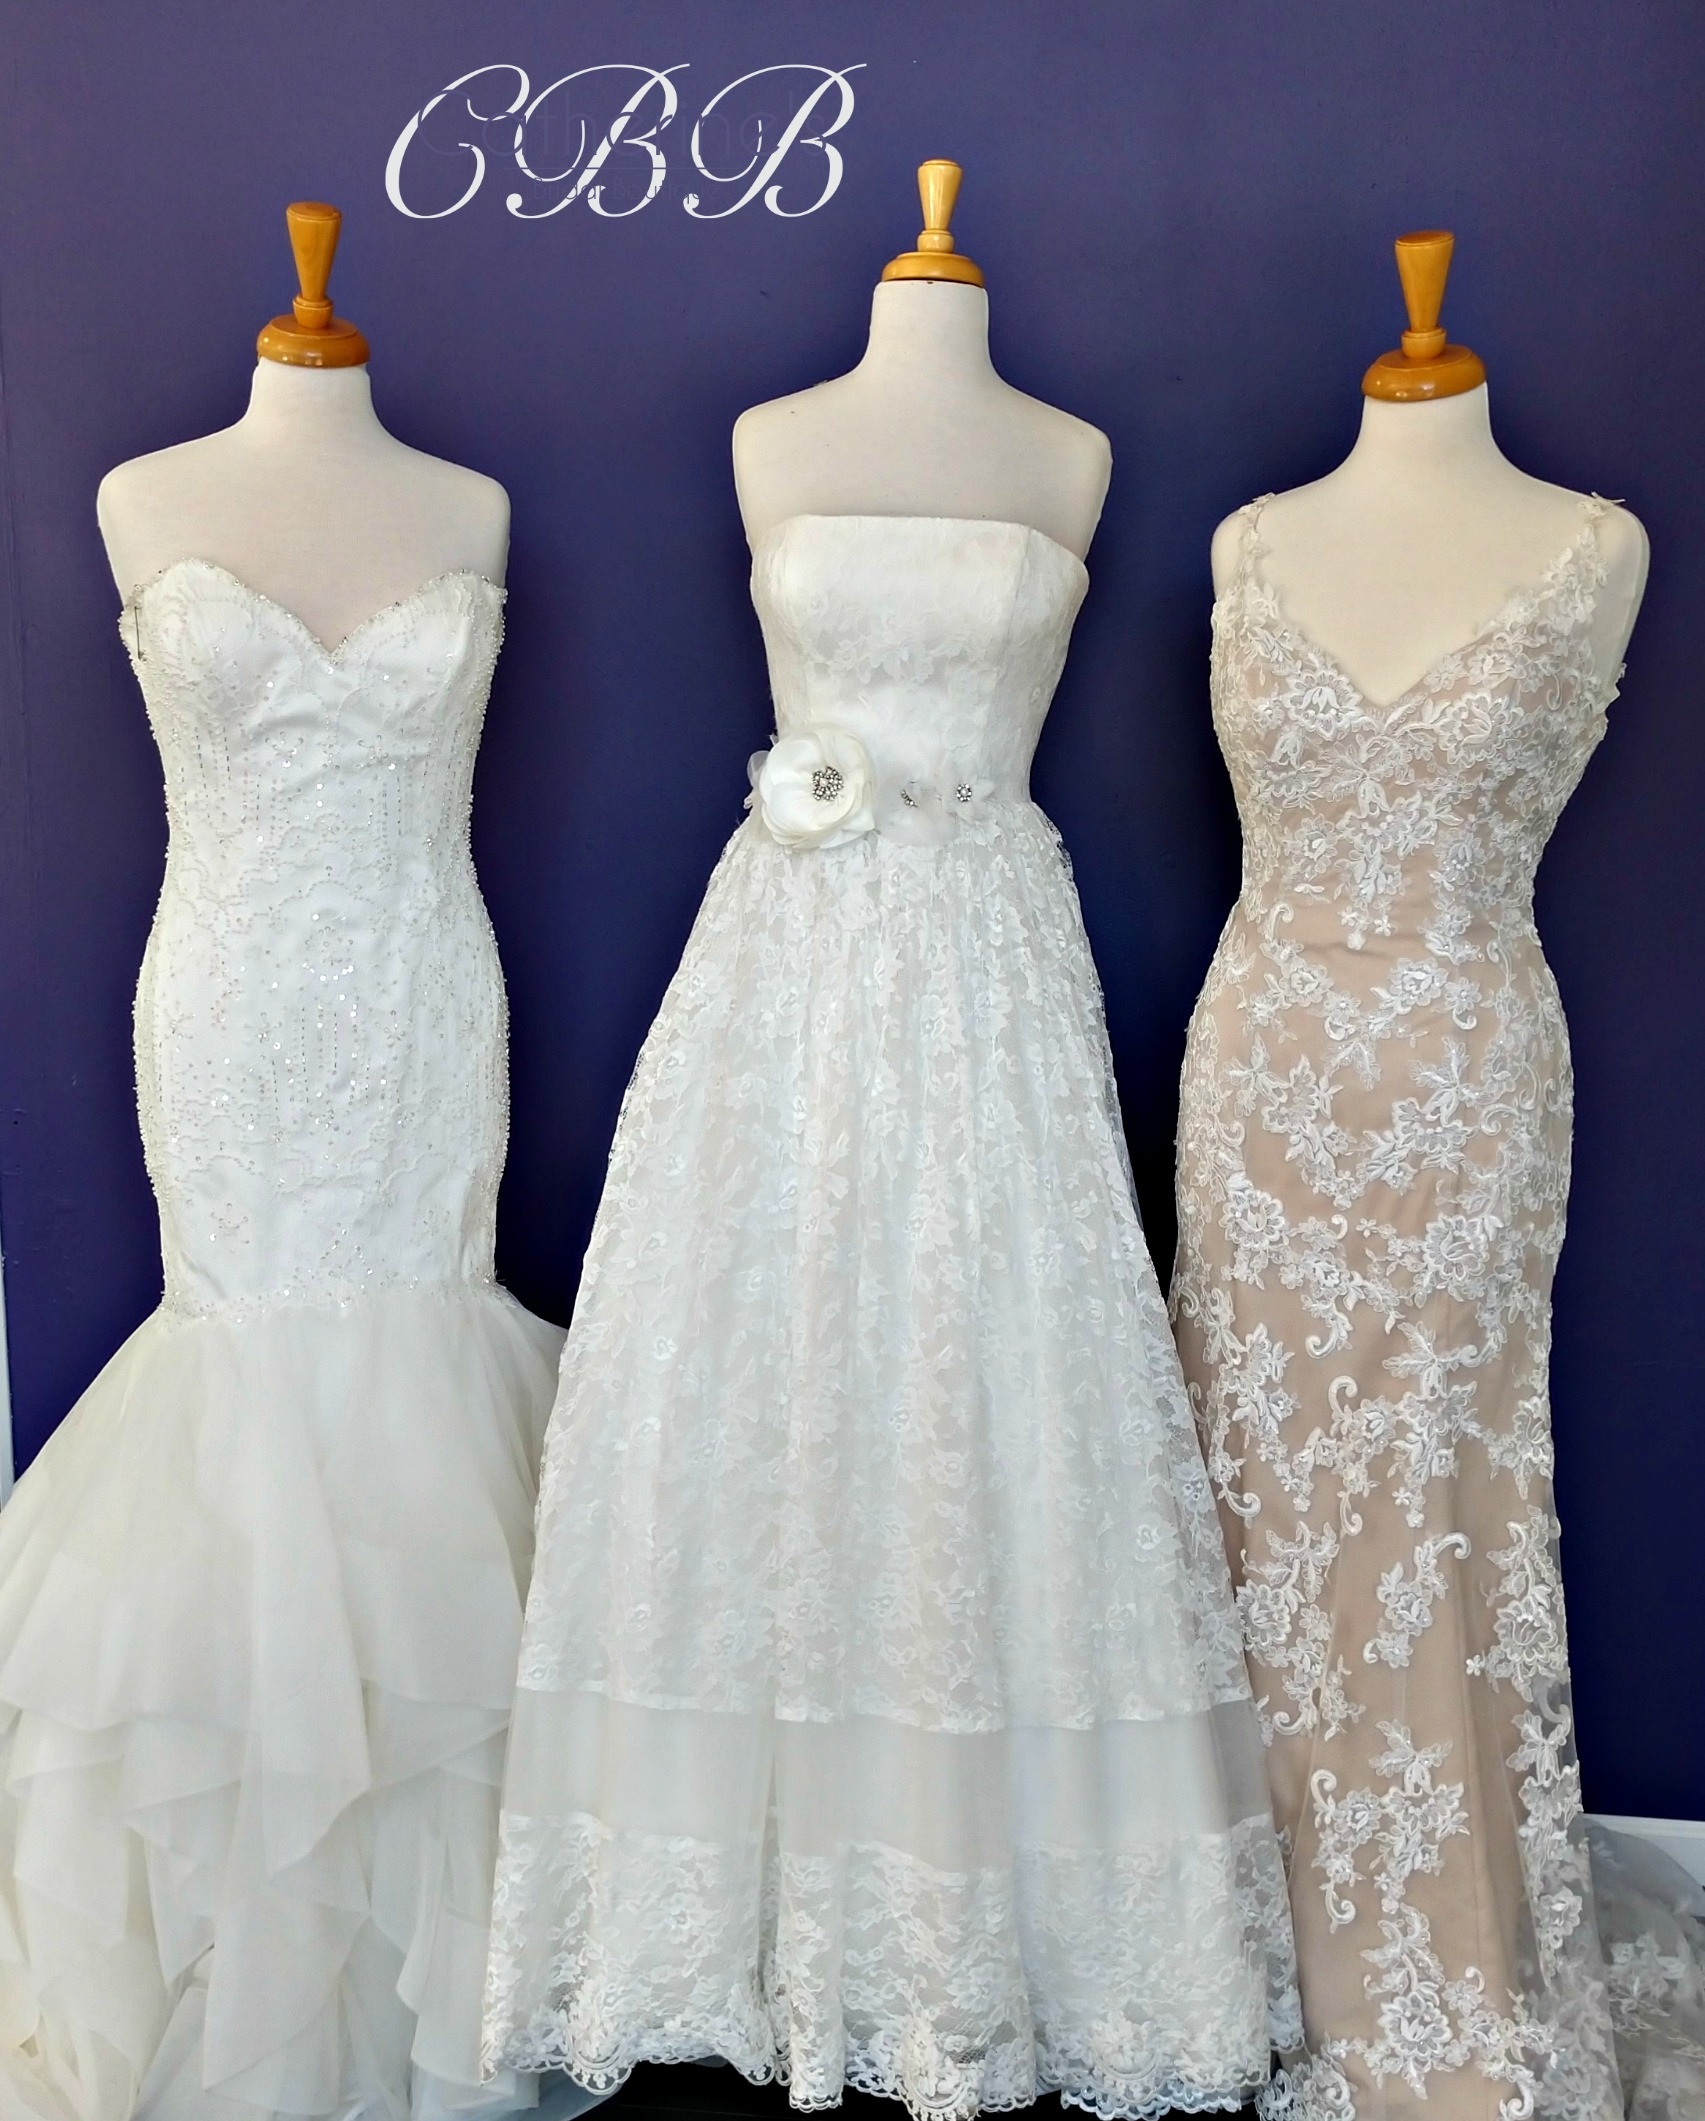 Click here to learn more about the Wedding Gown Clearance Event!